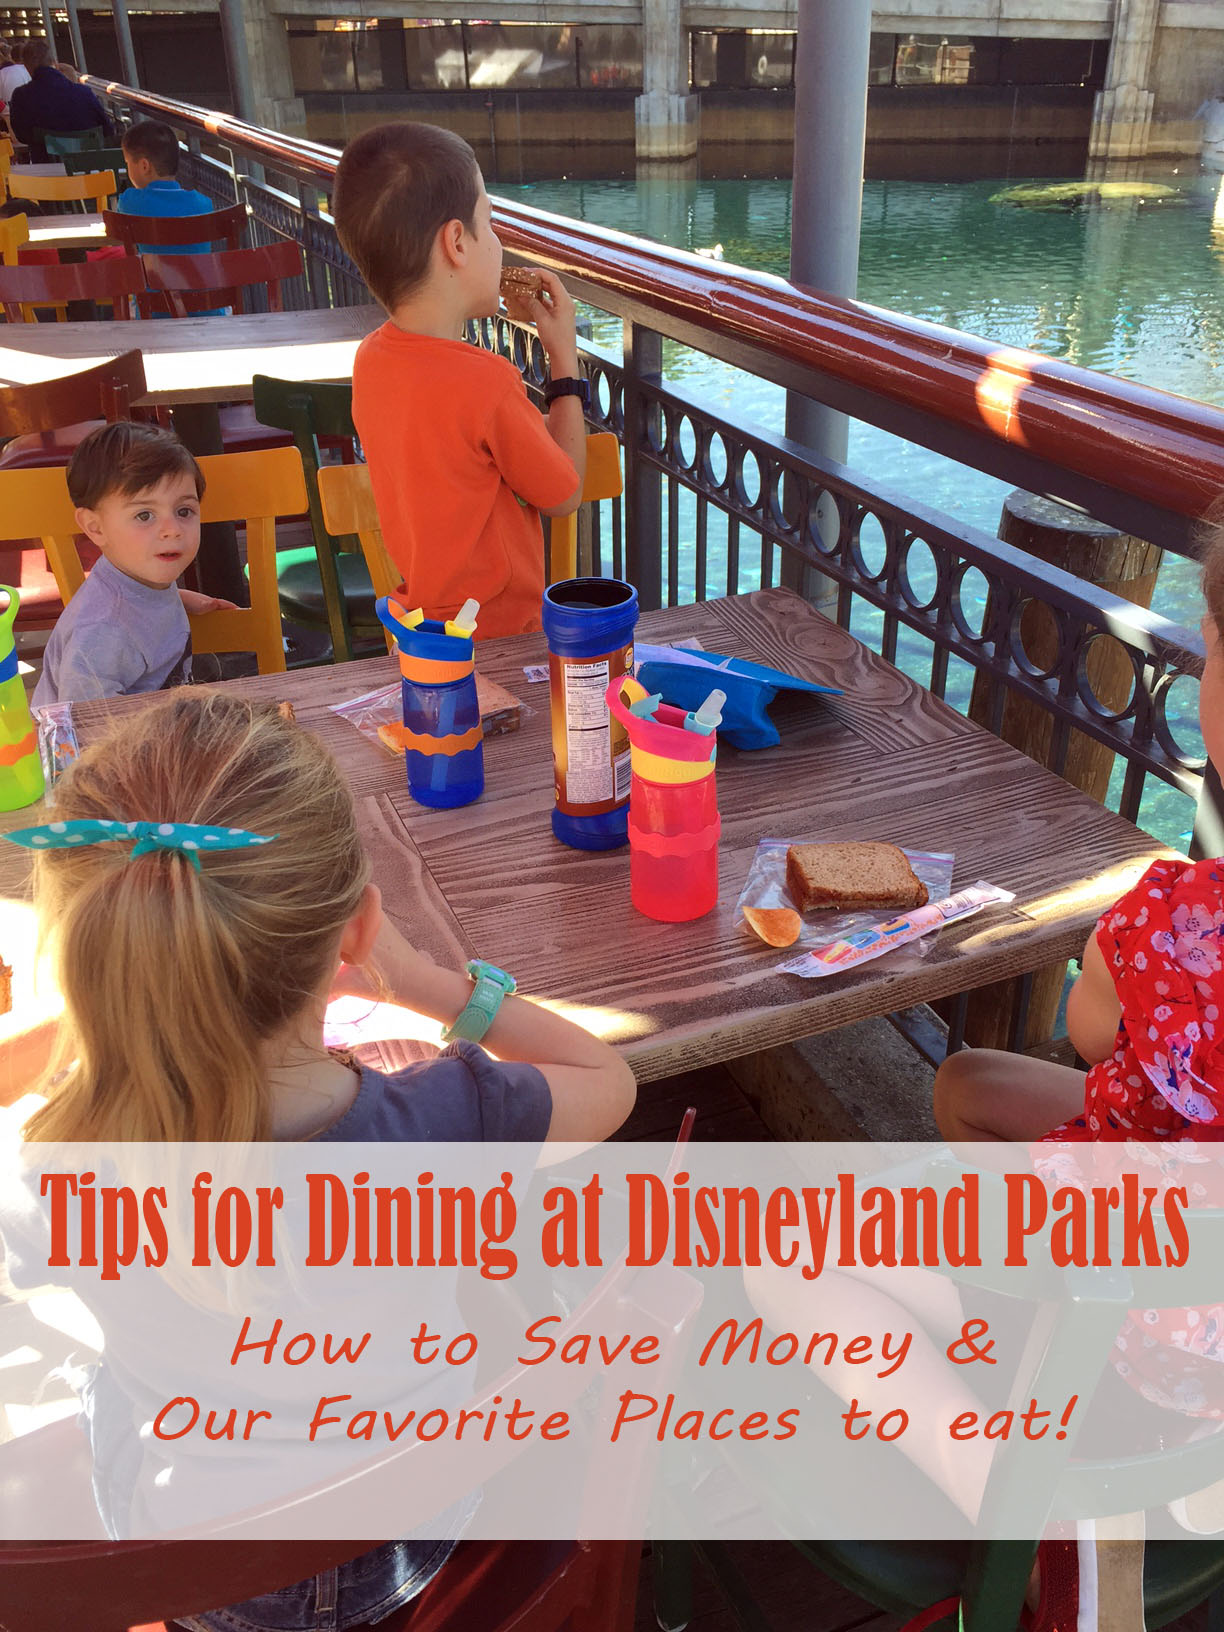 Disneyland Dining Tips